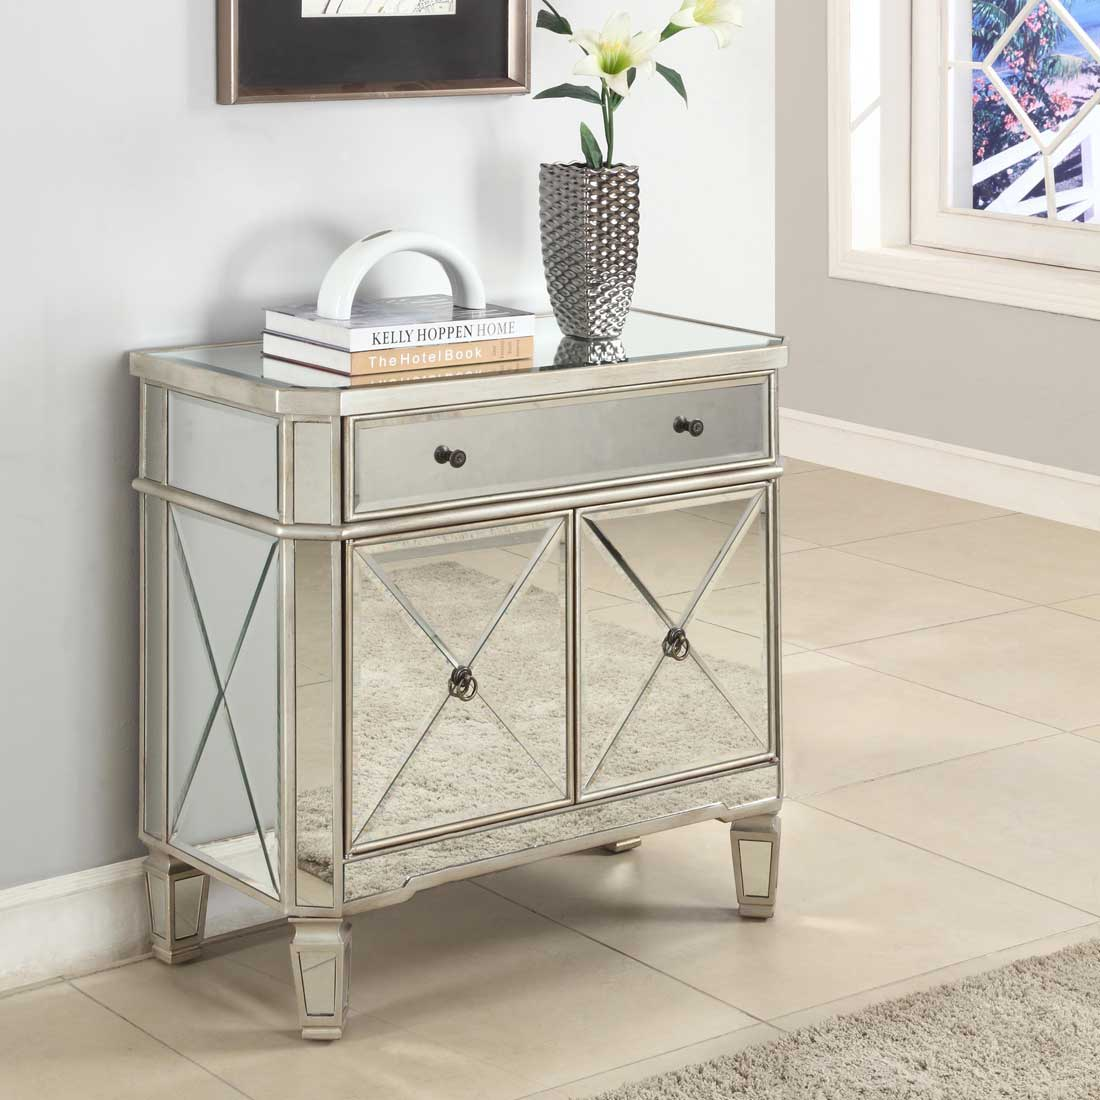 mirrored accent table fossil brewing design awesome mackenzie oversized outdoor umbrellas antique round dining furniture chests and cabinets best nightstands trestle lamps battery